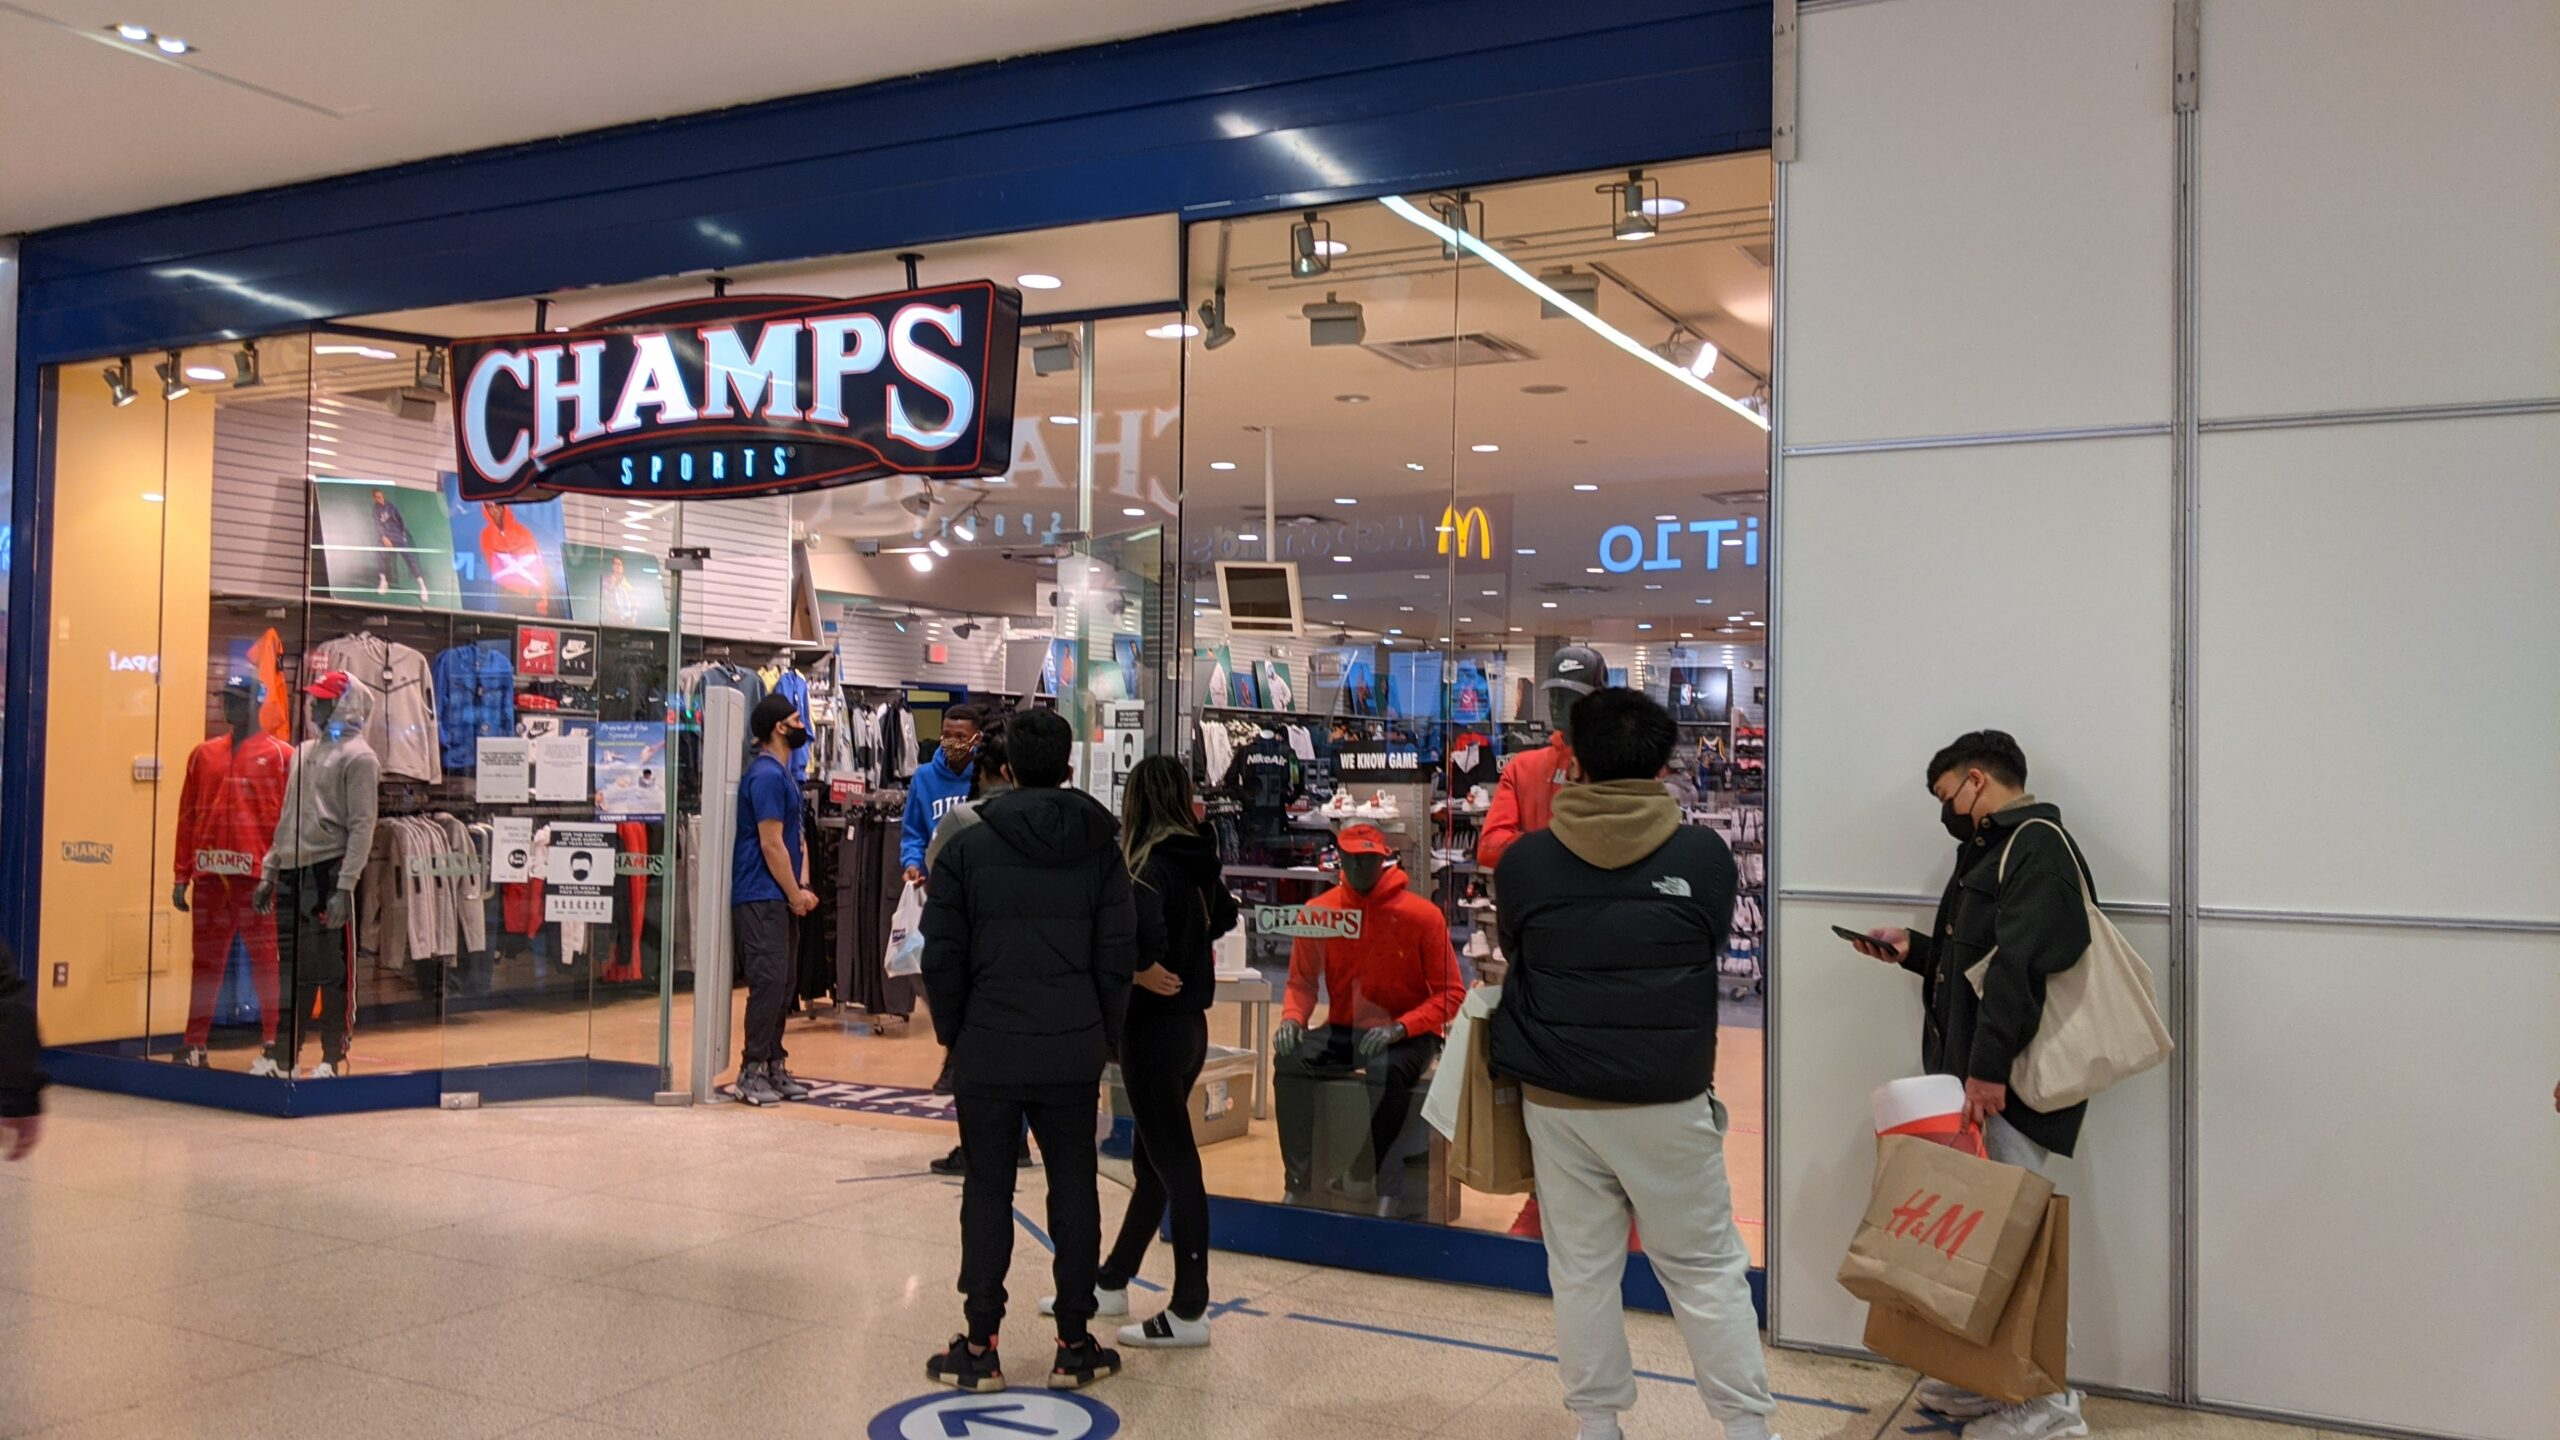 Champs Sports at West Edmonton Mall